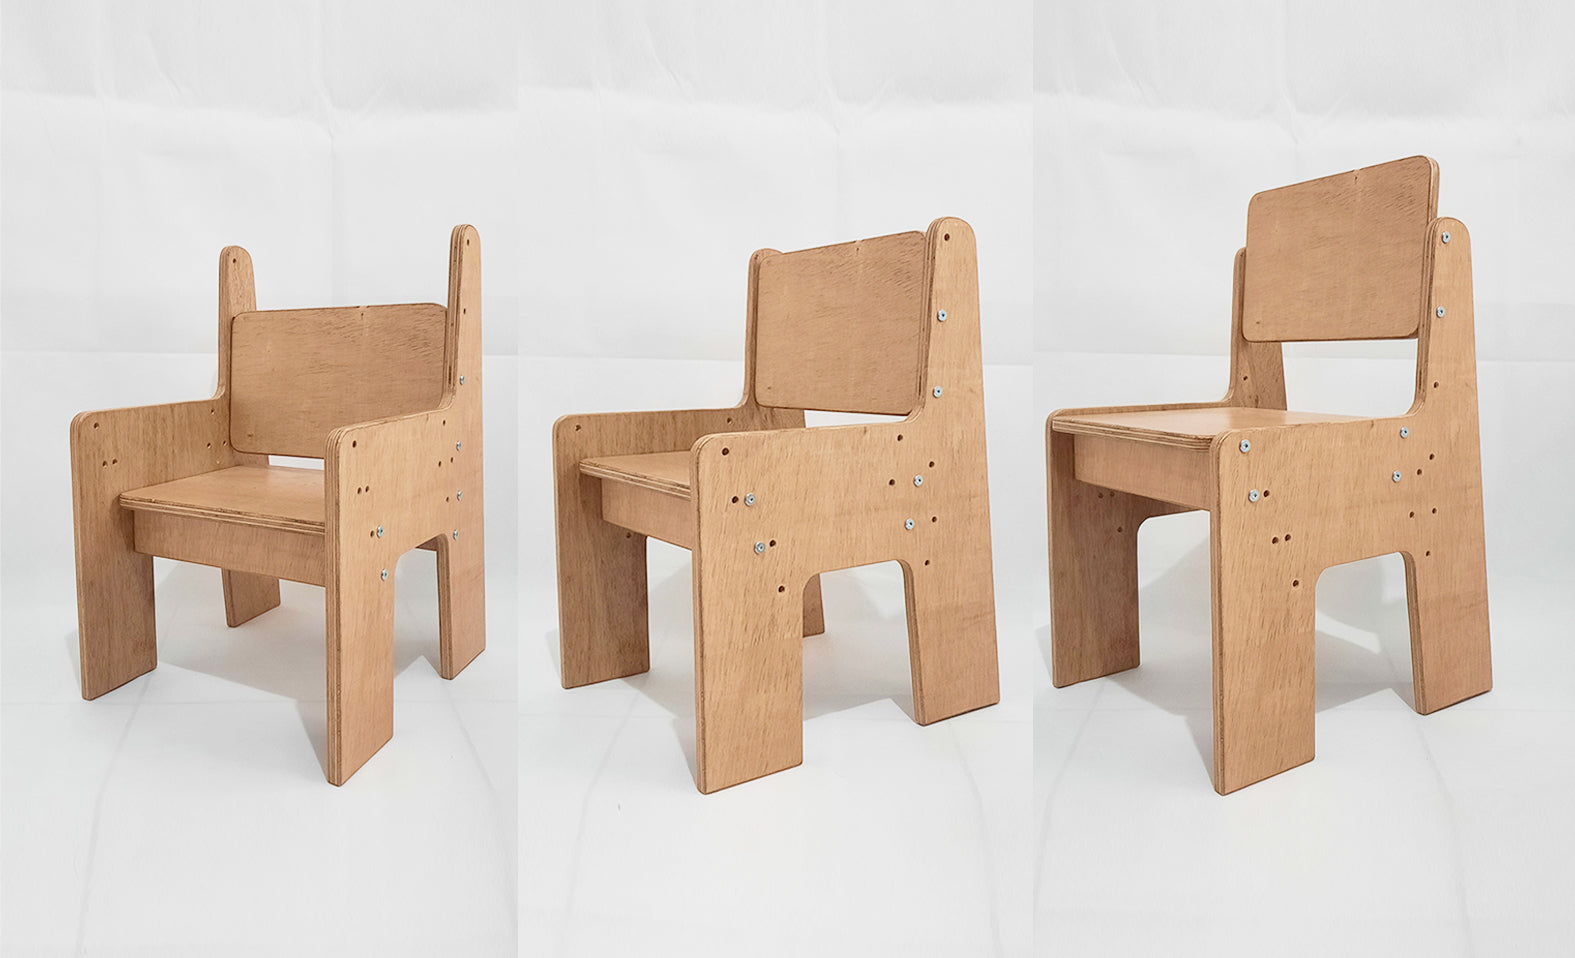 The Five & Up Chair is shown in all its Forms.